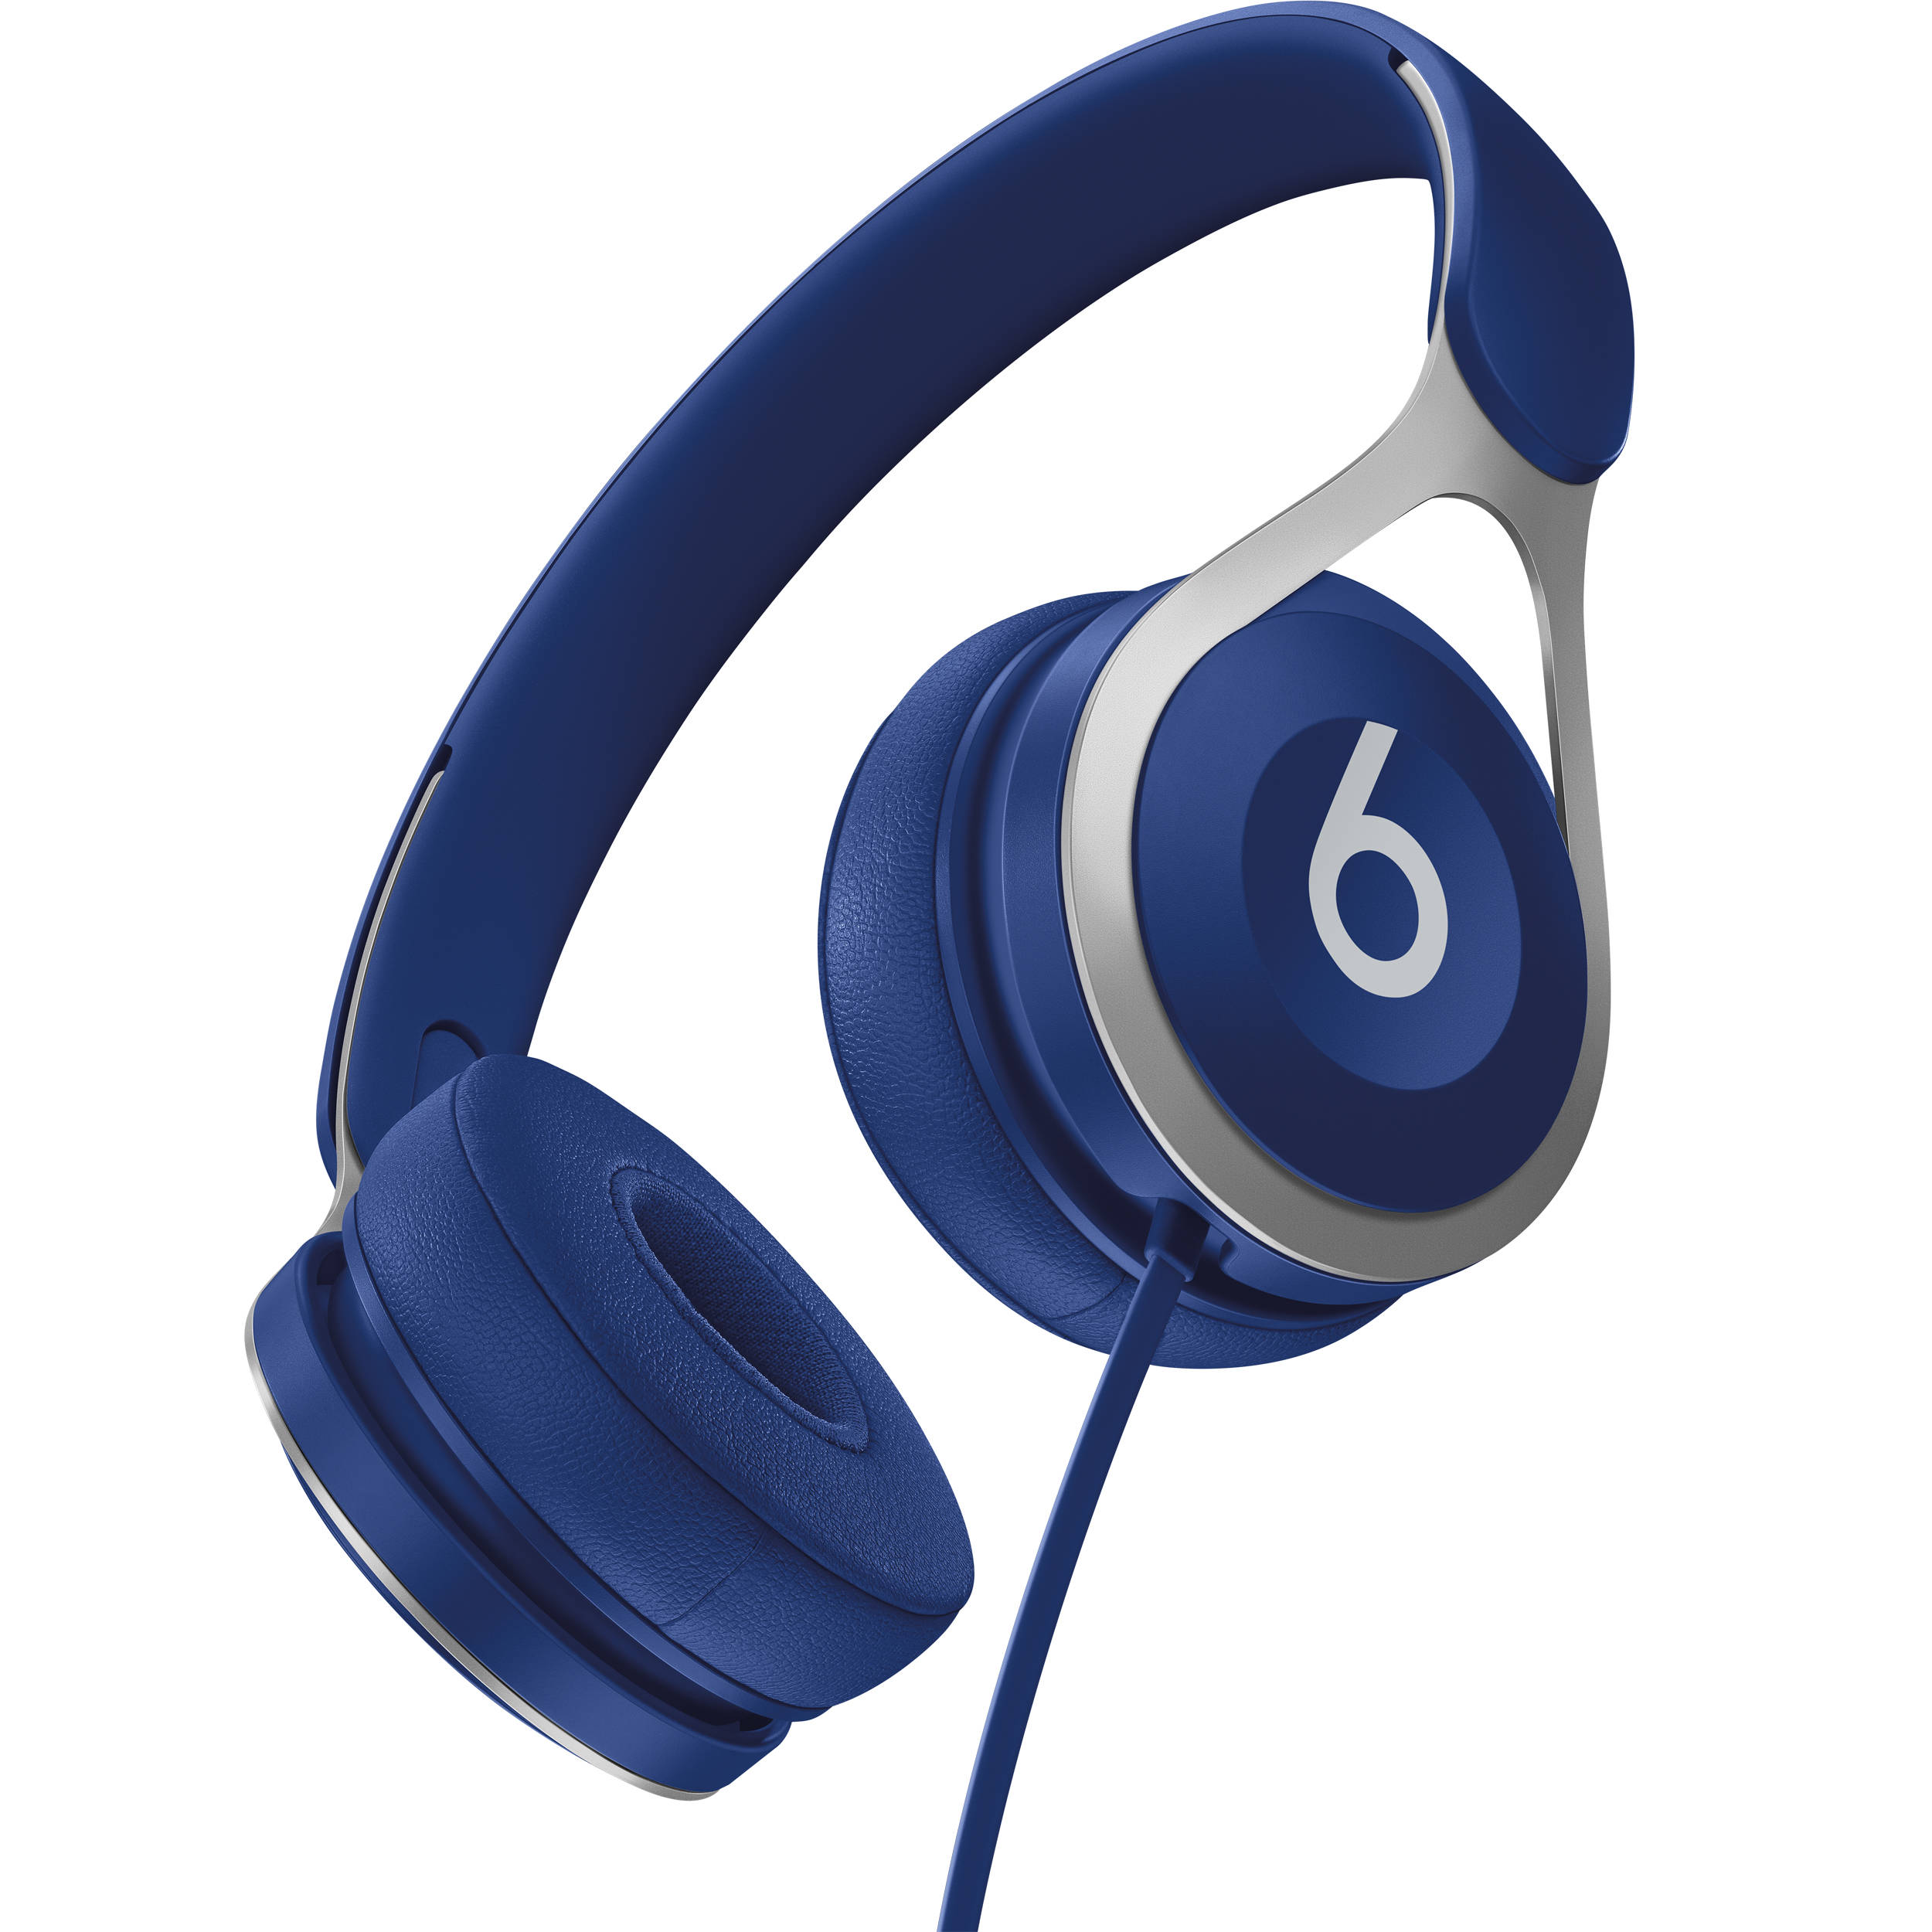 Zip Up Headphones Beats By Dr Dre Beats Ep On Ear Headphones Blue Ml9d2ll A Bh